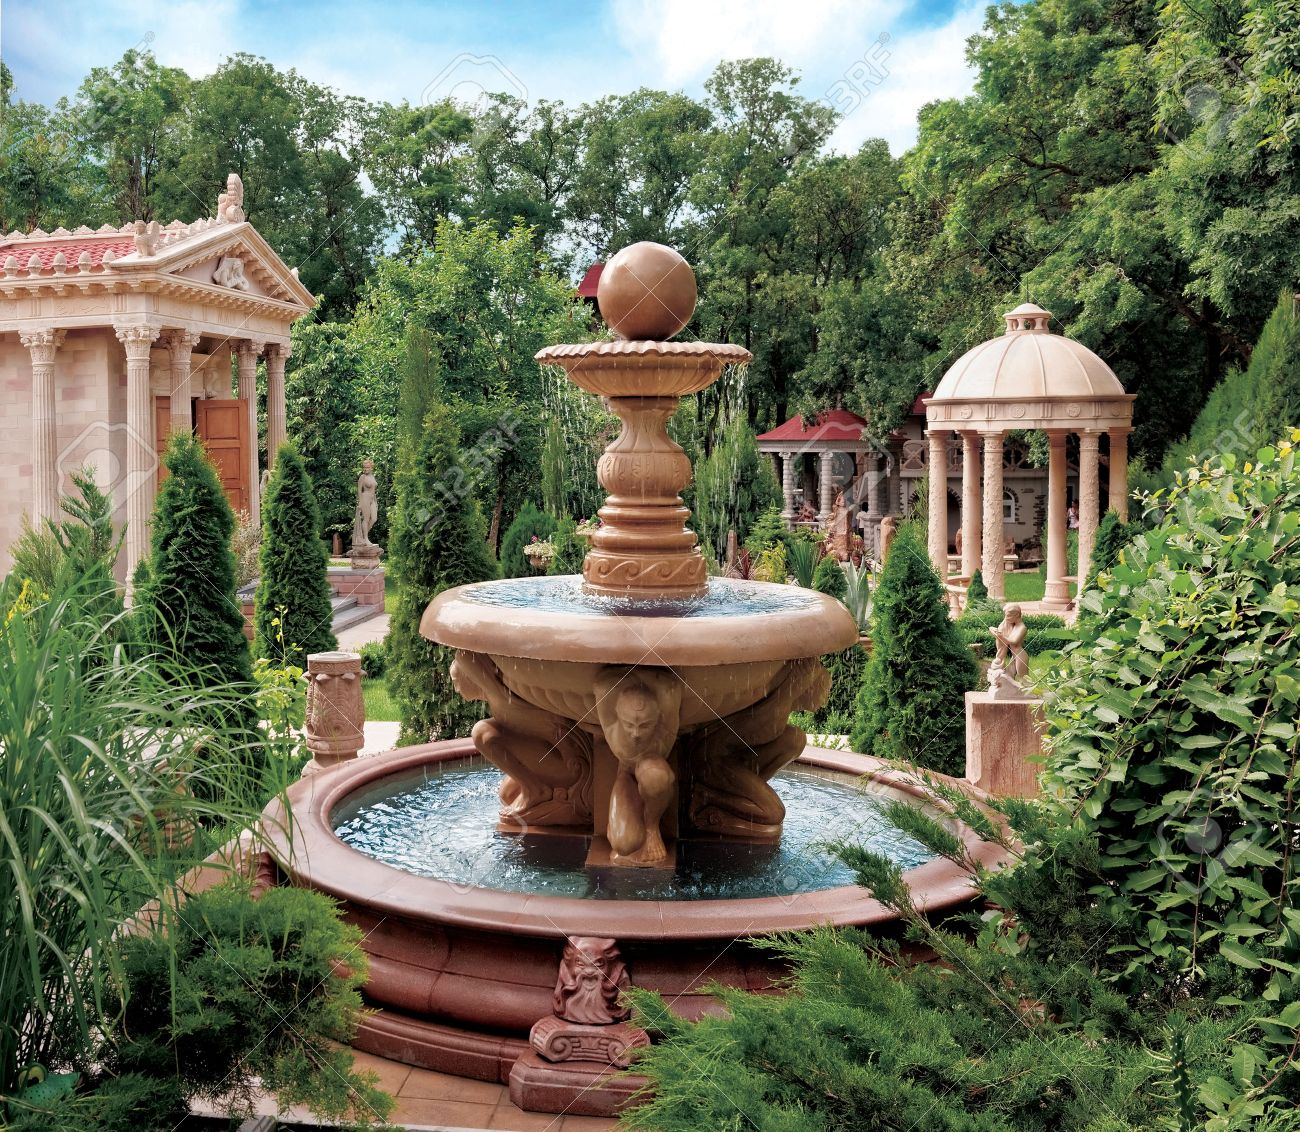 Water Fountain In Old Park. Scenic View Of Decorative Water Fountain And  Structures In Old